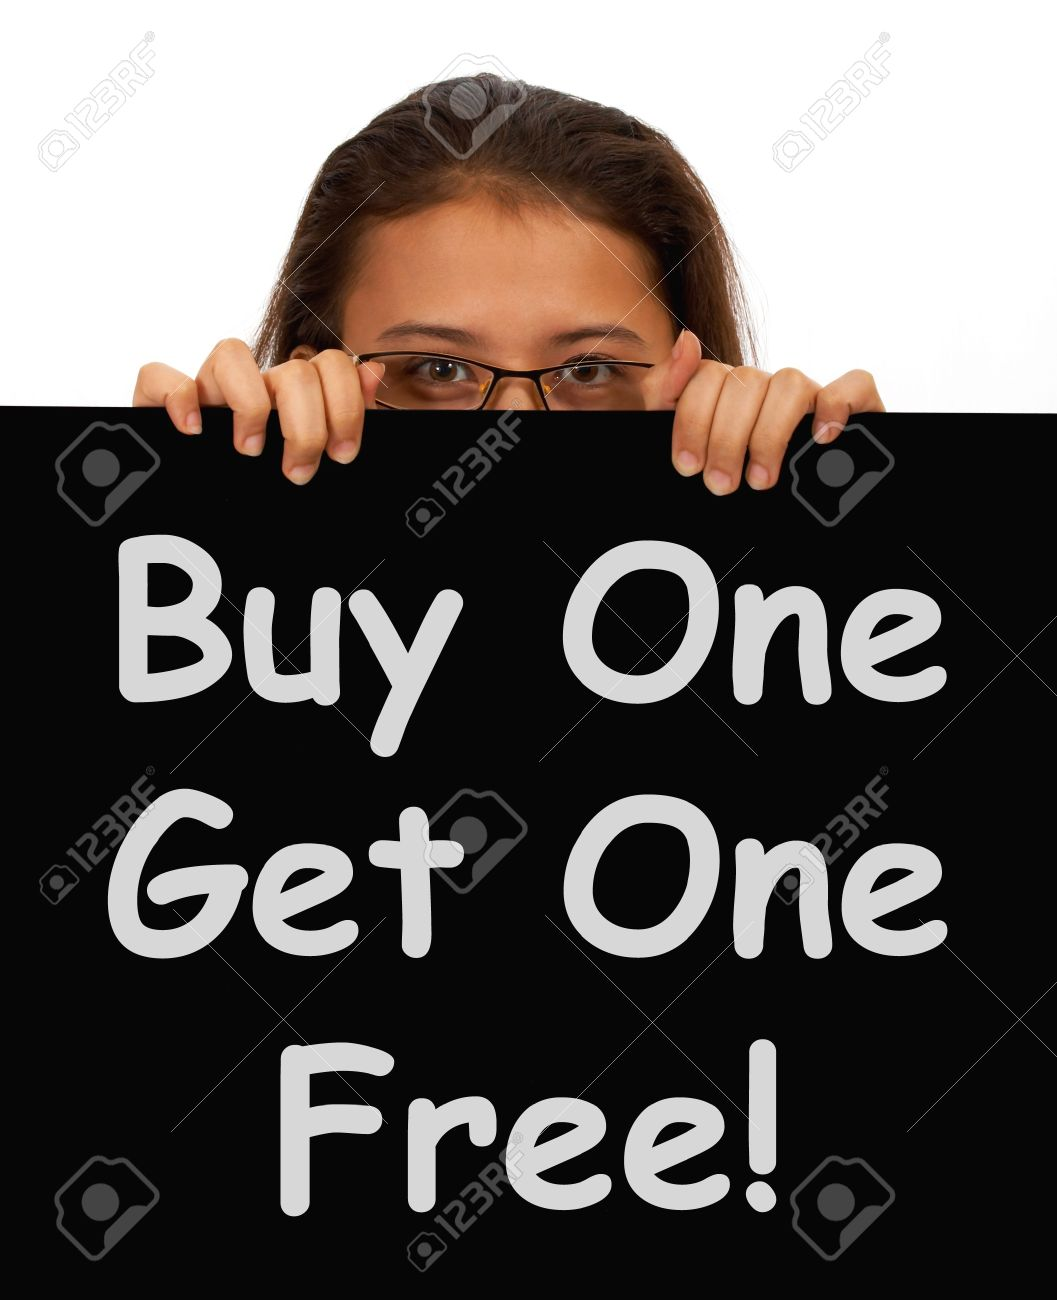 Buy One Get 1 Free Sign Shows Discounts Or Reductions Stock Photo - 14027210